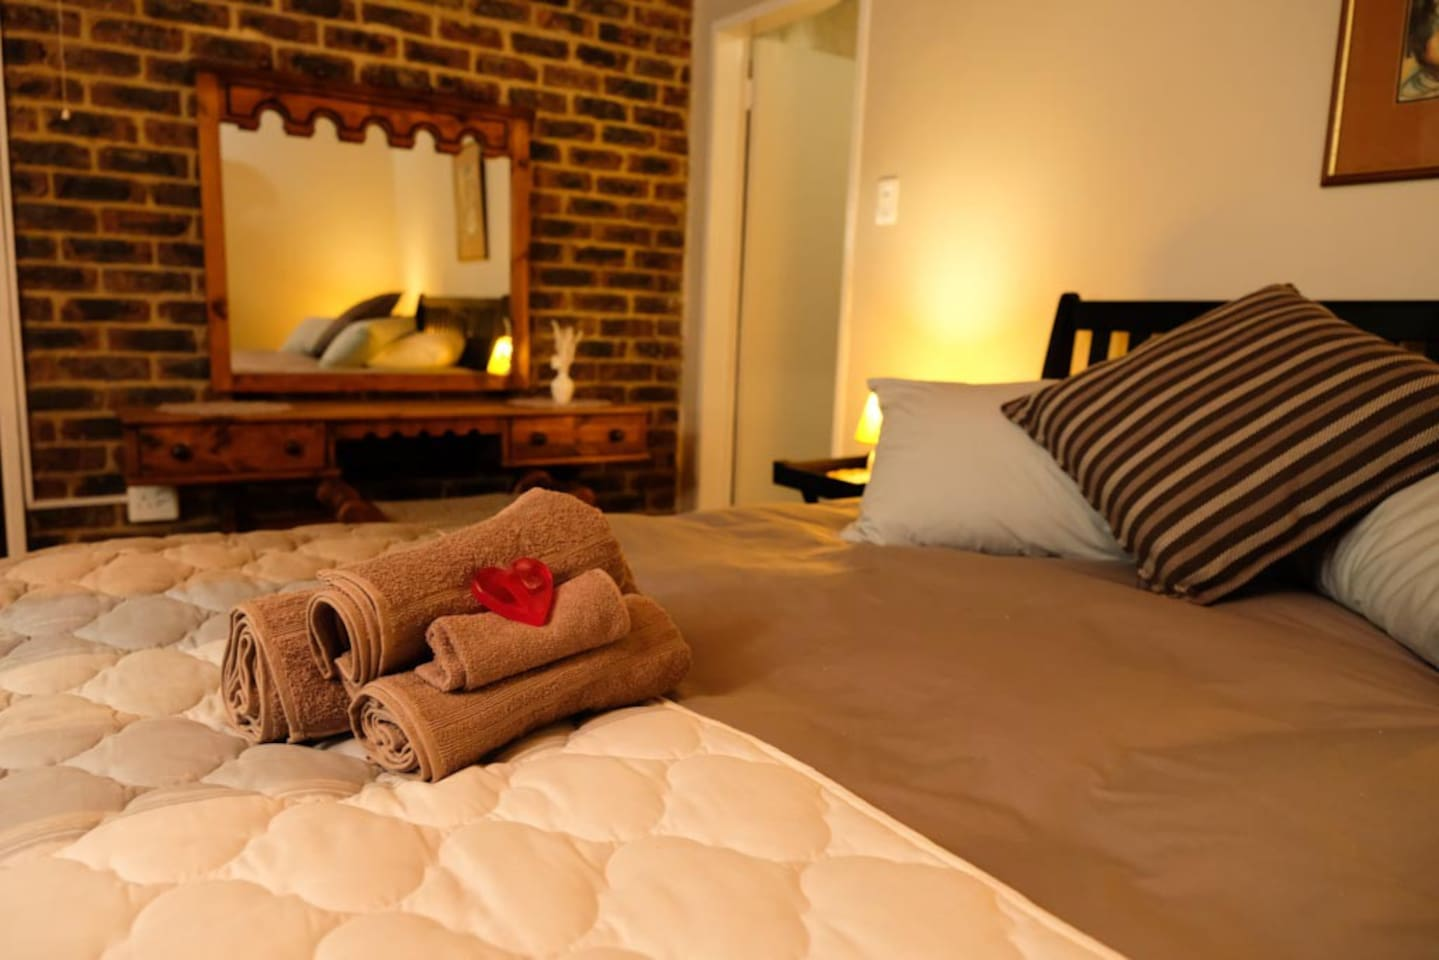 Cozy double bed room with on-suite bathroom